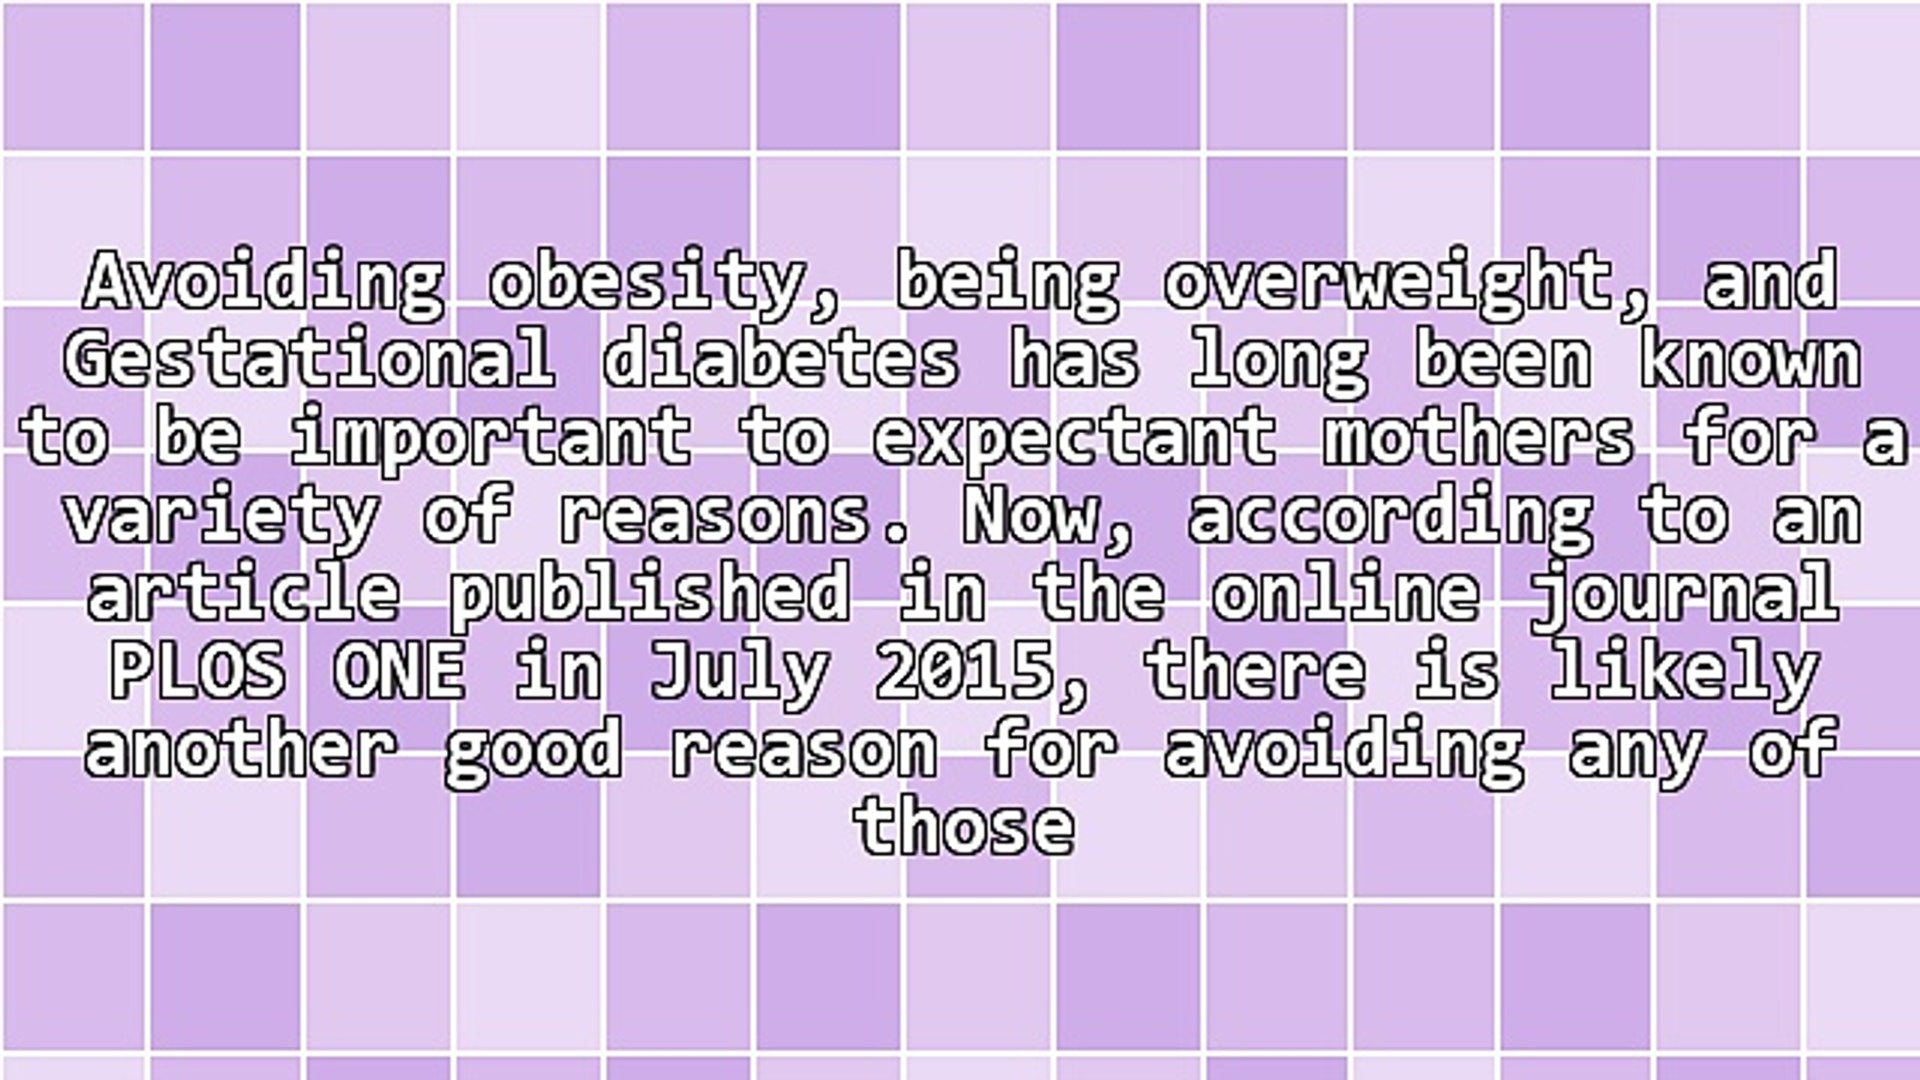 Type 2 Diabetes - The Effect of the Expectant Mother's Health On Her Baby's Brain